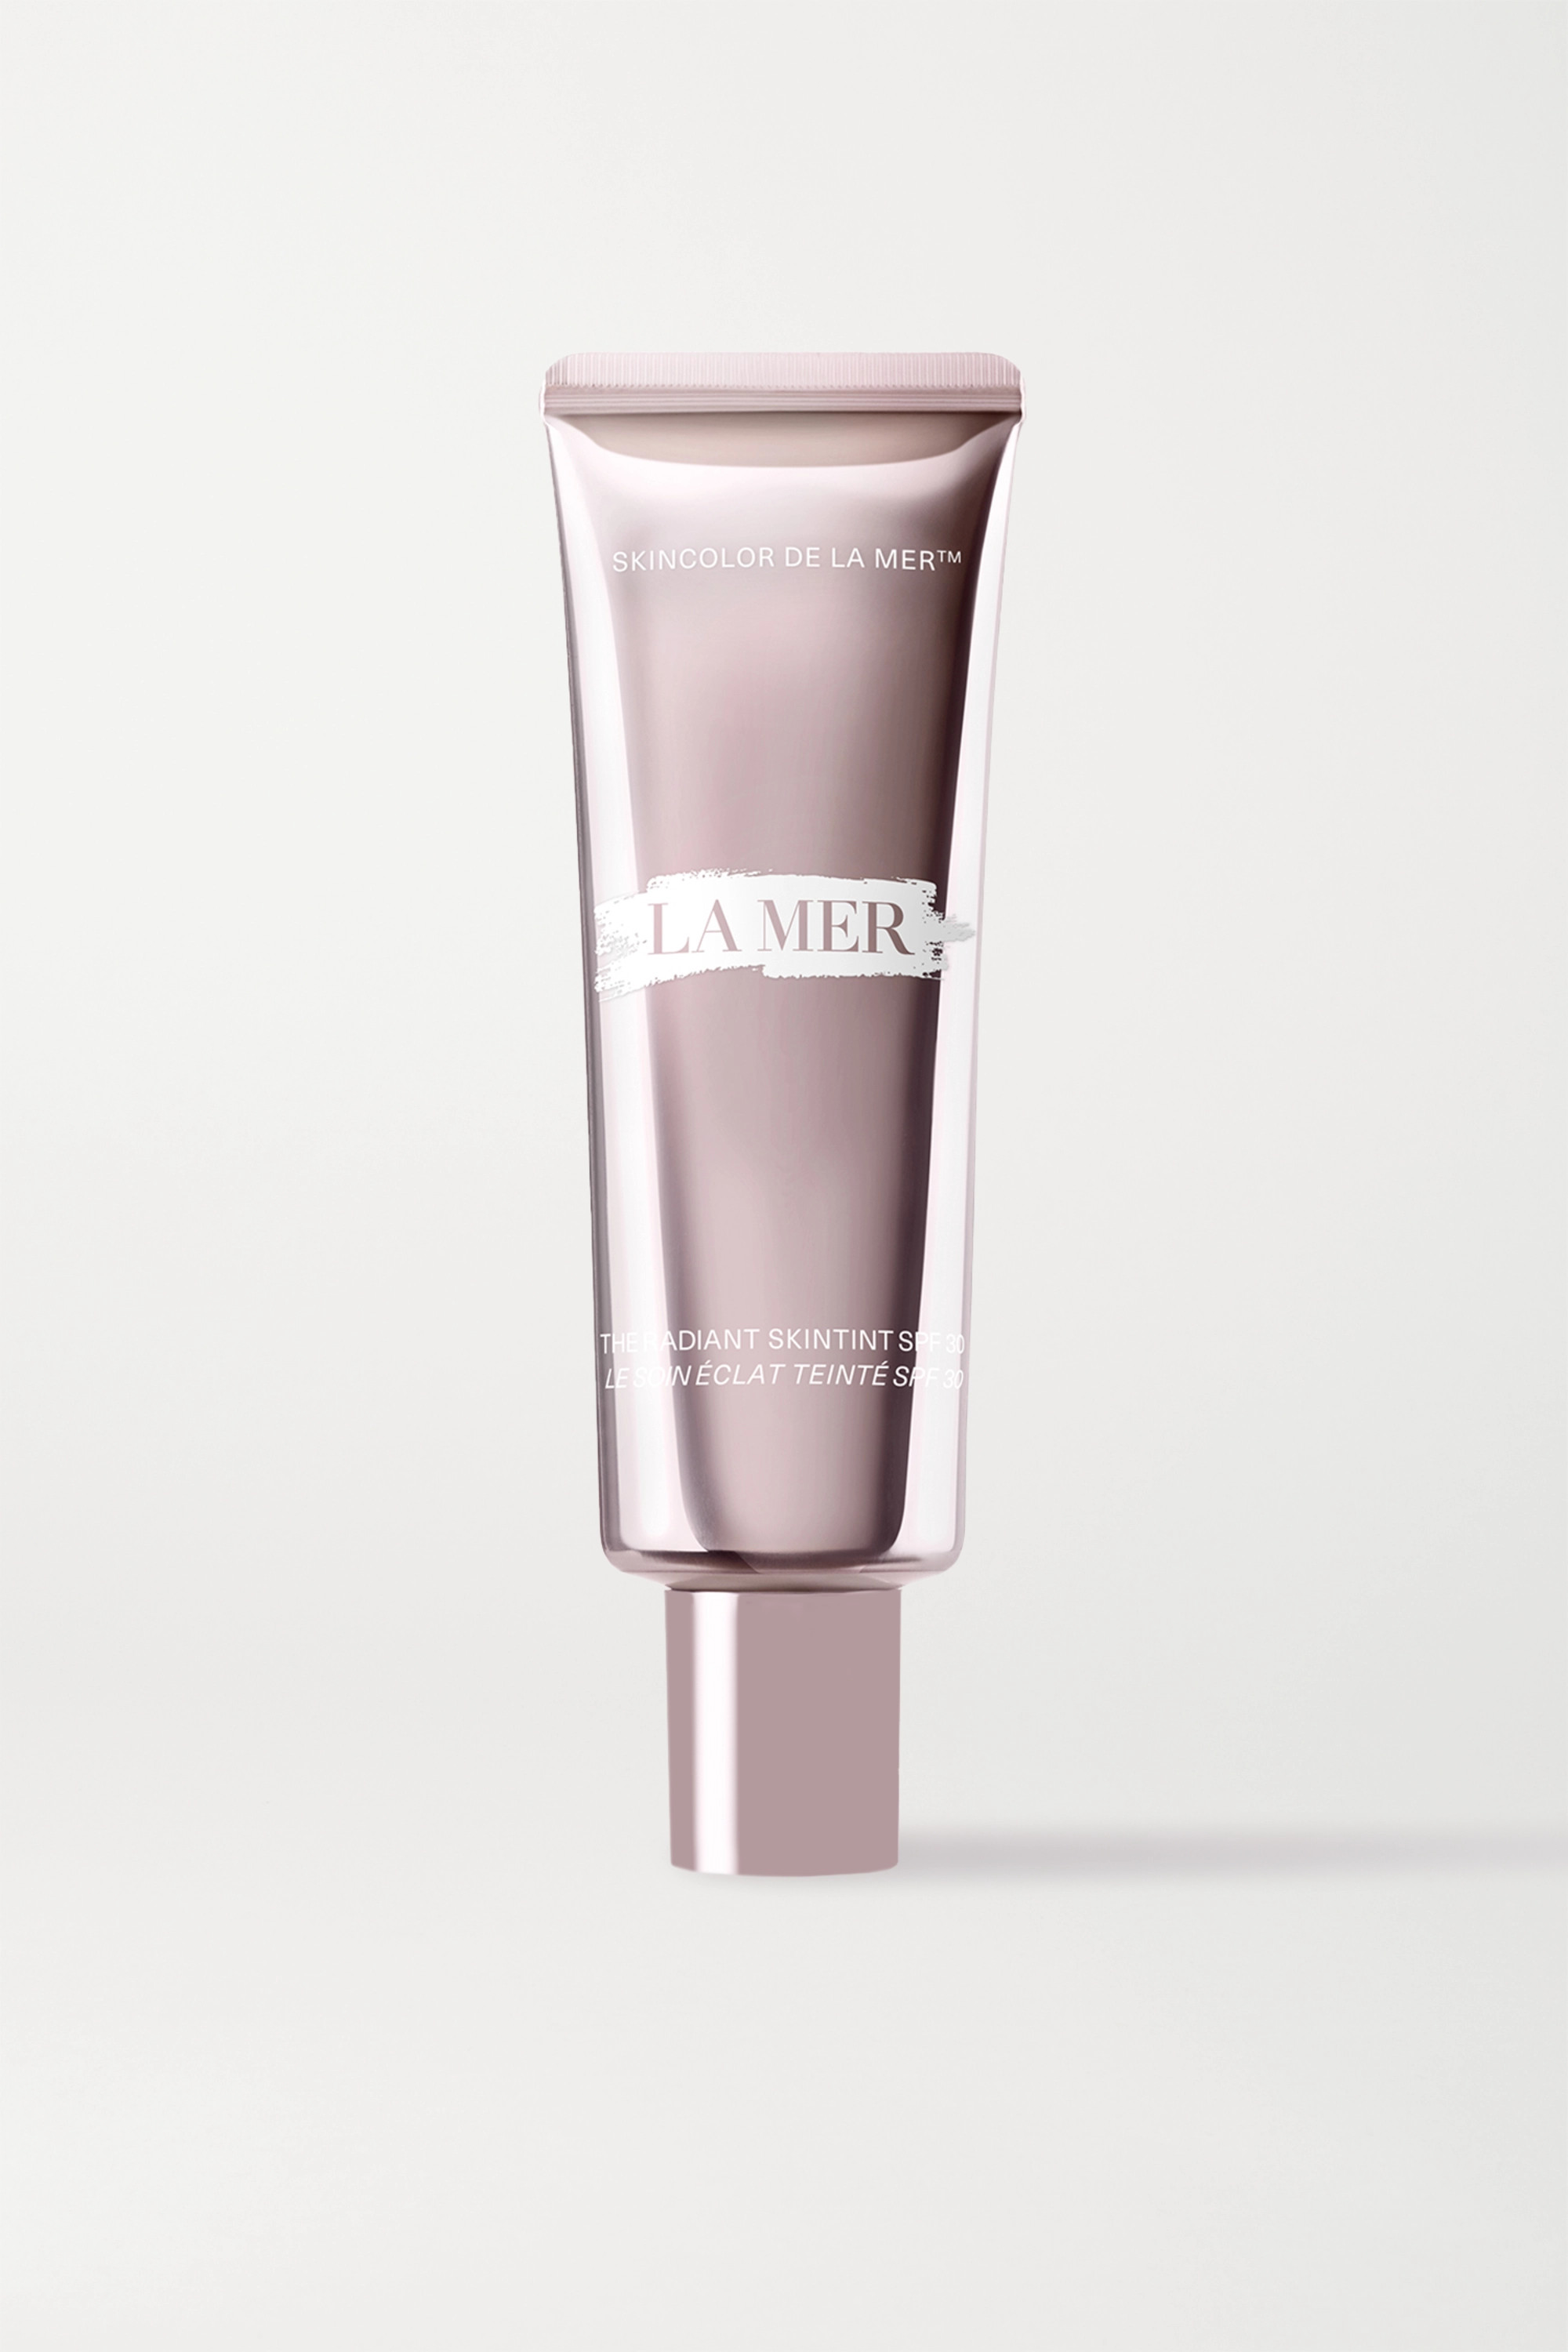 LA MER The Radiant SkinTint Broad Spectrum SPF30 - Medium, 40ml